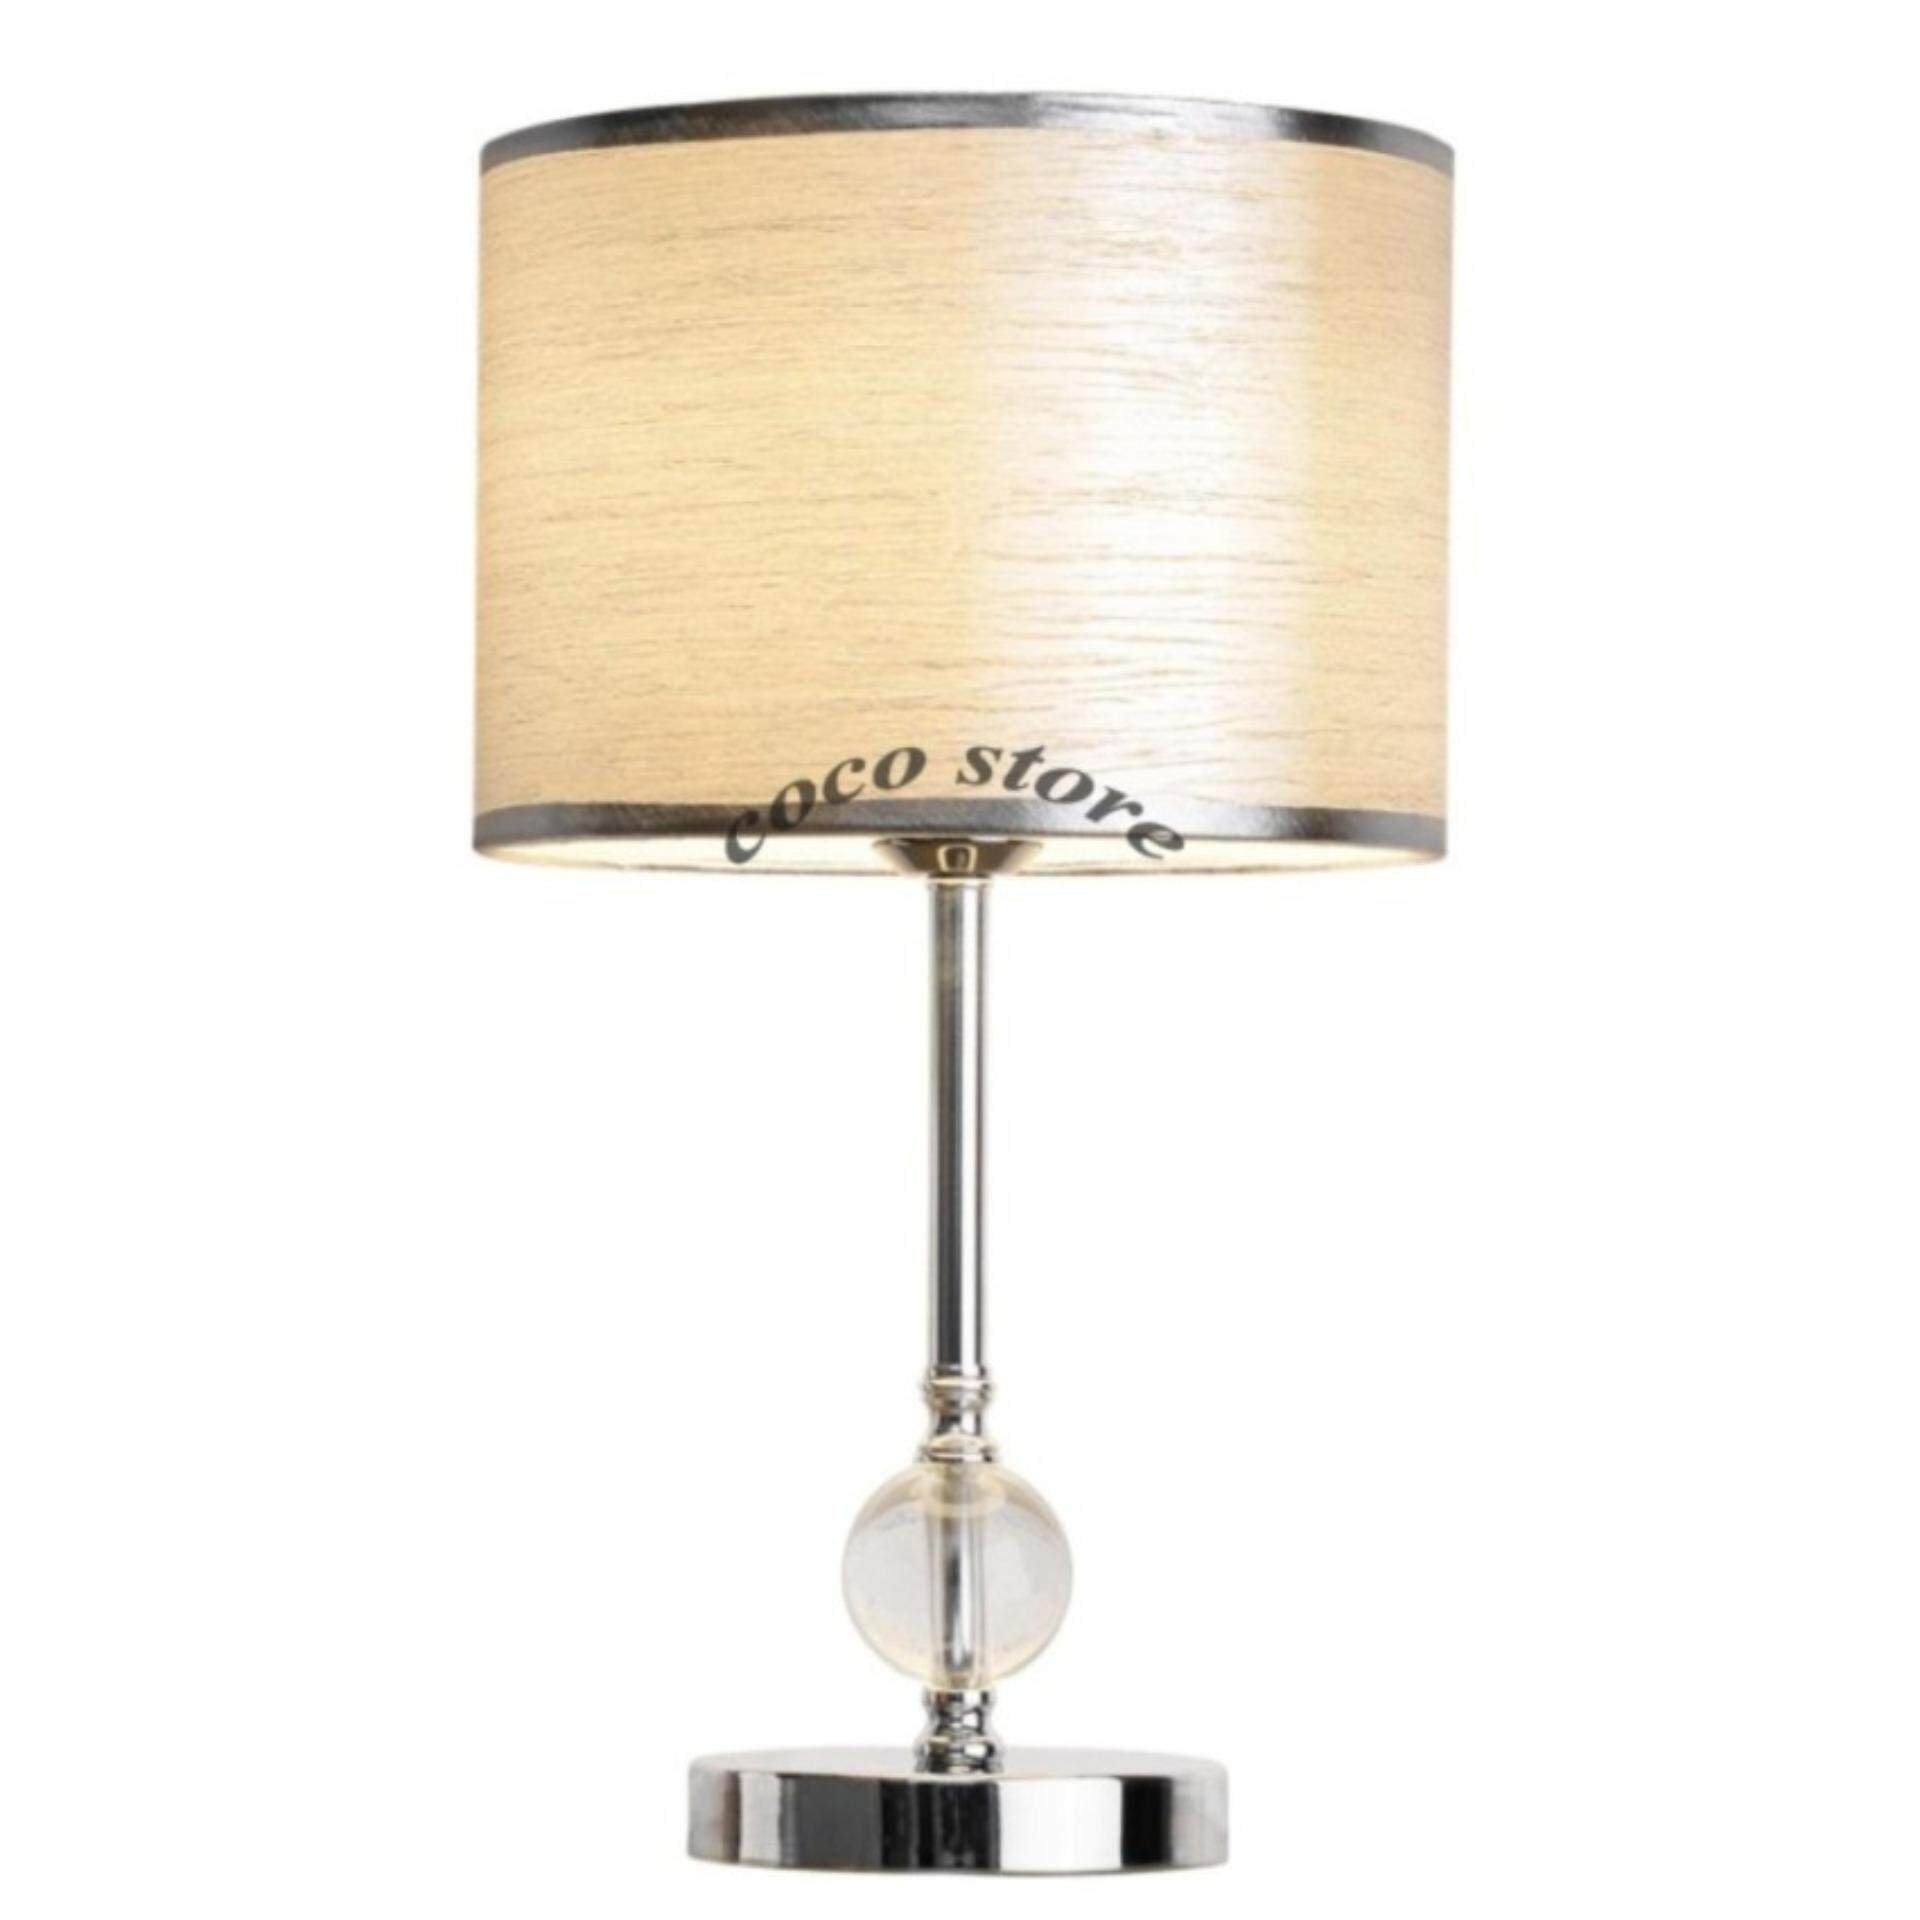 Table Lamp COCO STORE Modern Simple Crystal Desk Lamp European Style  Decorative Light Push Button Switch